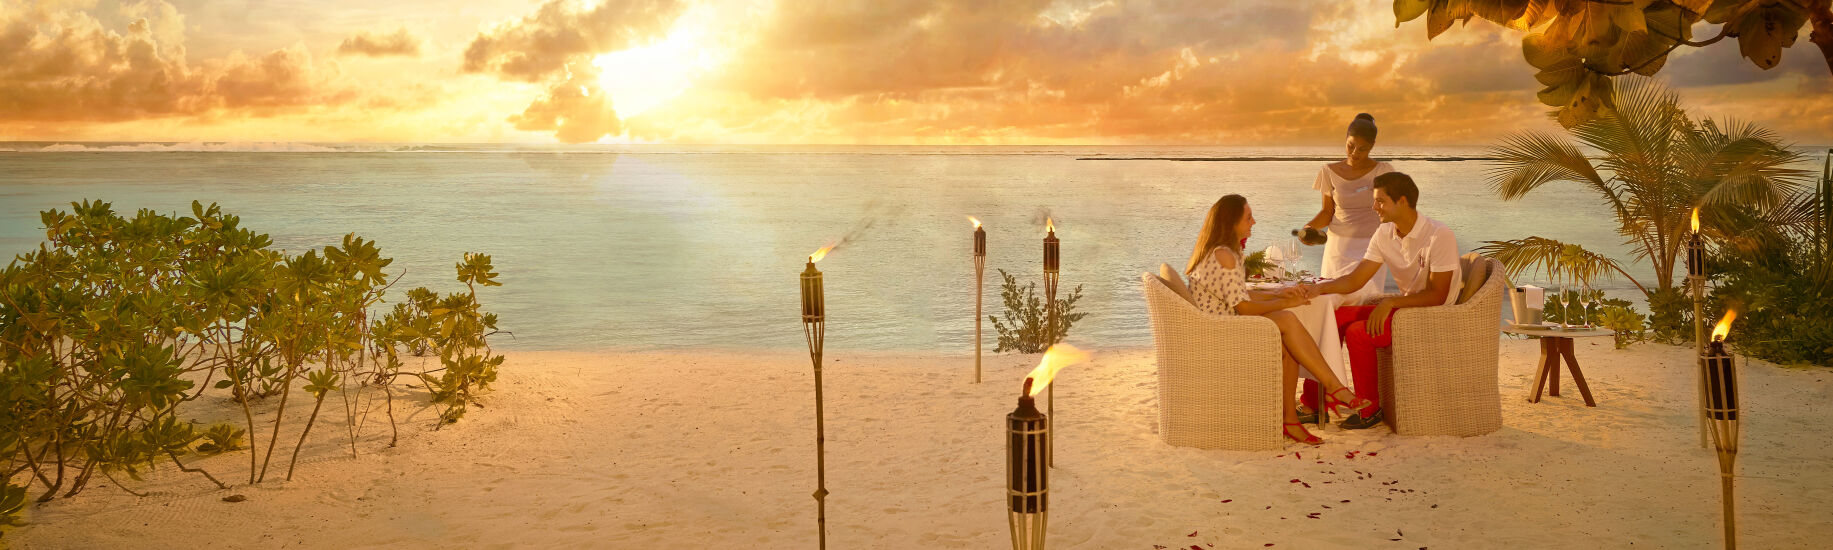 Luxury Holiday Offers